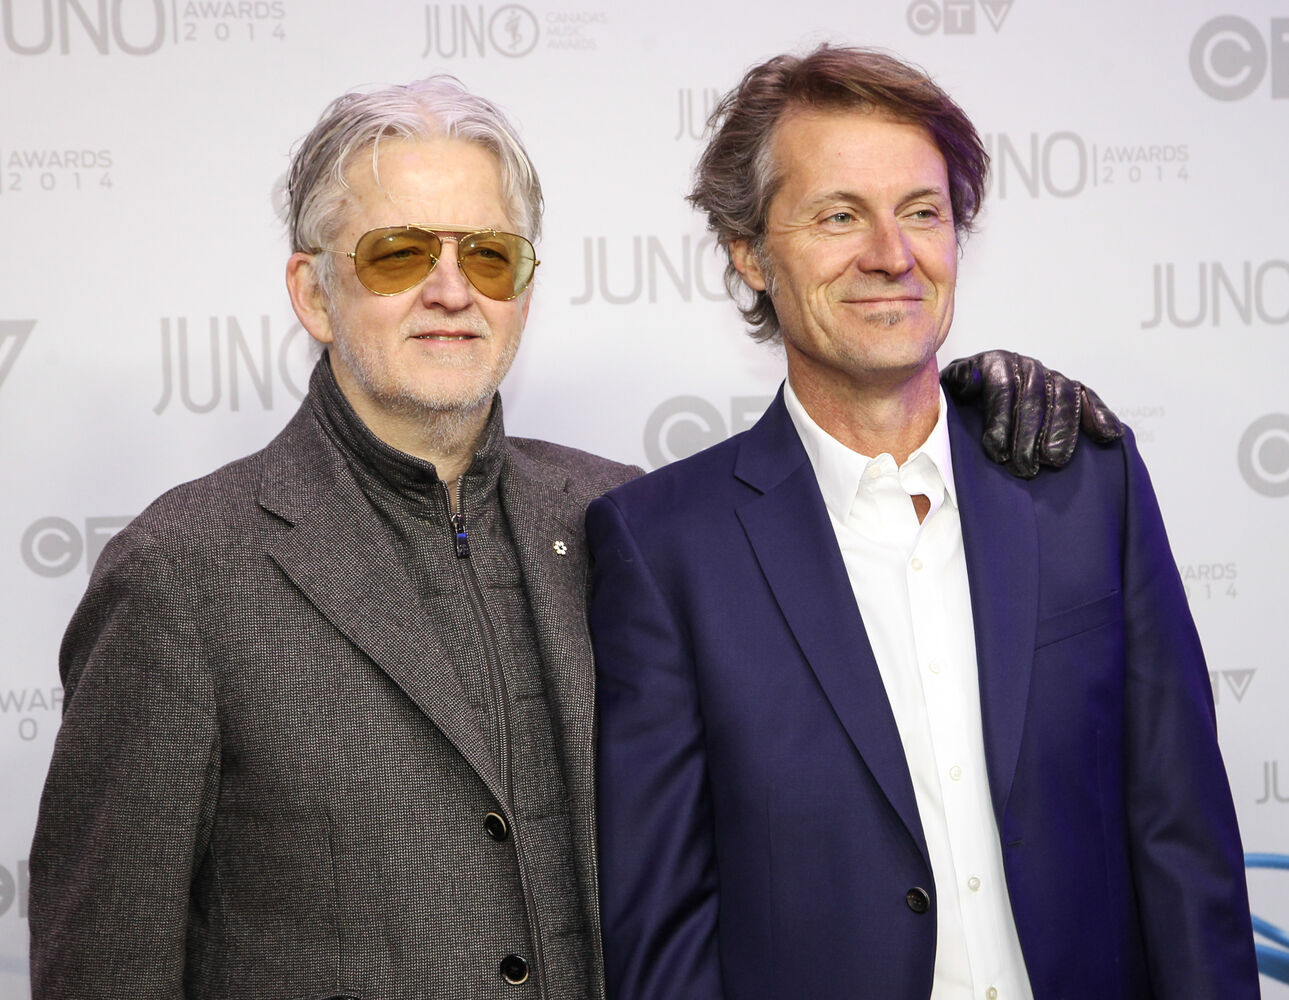 Greg Keelo and Jim Cuddy of Blue Rodeo on the 2014 Juno Awards red carpet.